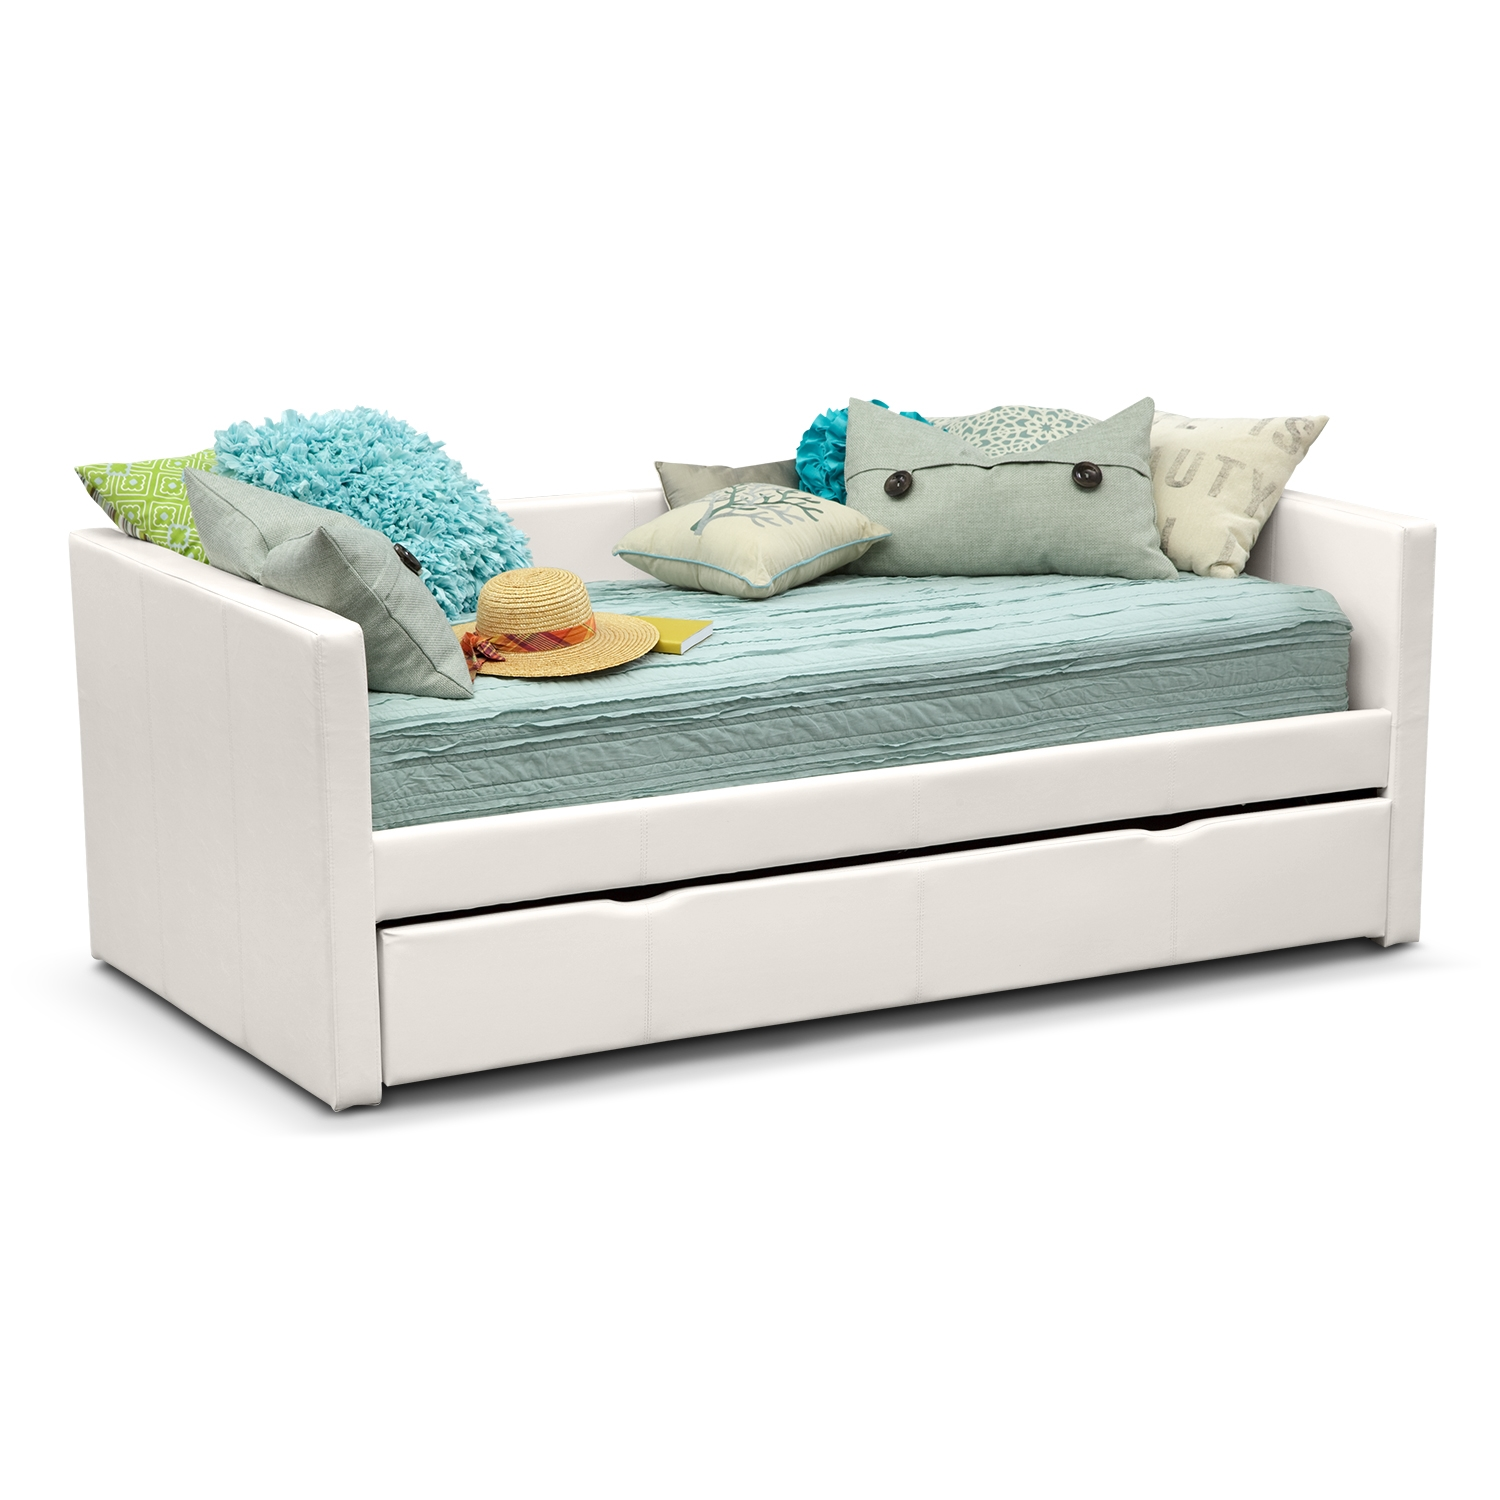 full daybed daybeds with trundles twin xl daybed